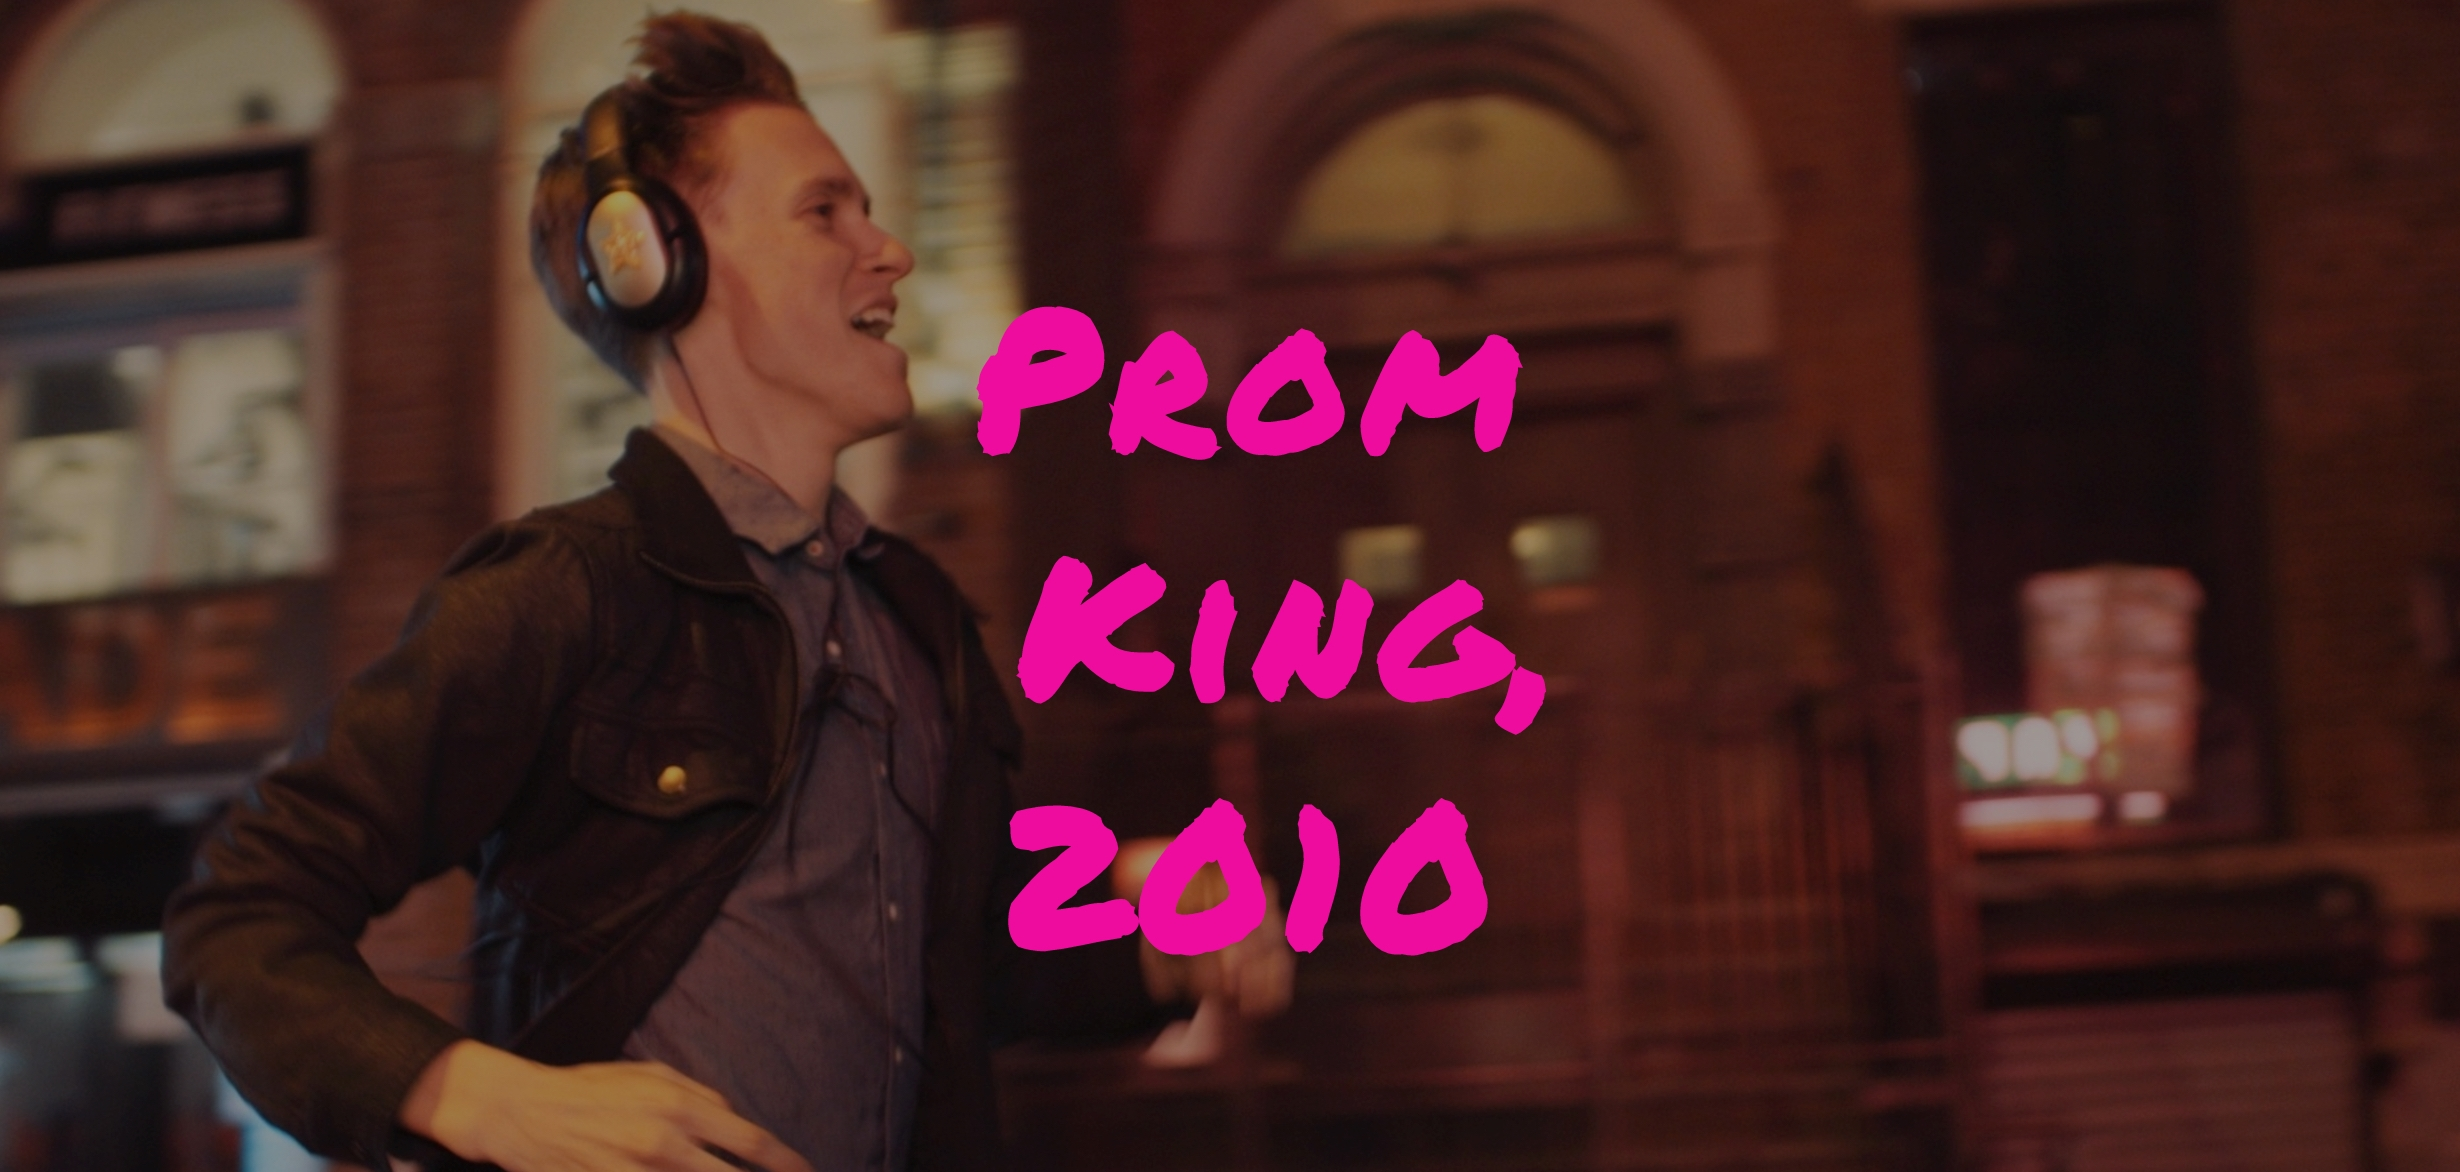 """Prom King 2010  (2016) indie feature, featuring Nicole Wood as """"Grace."""" Coming soon!"""